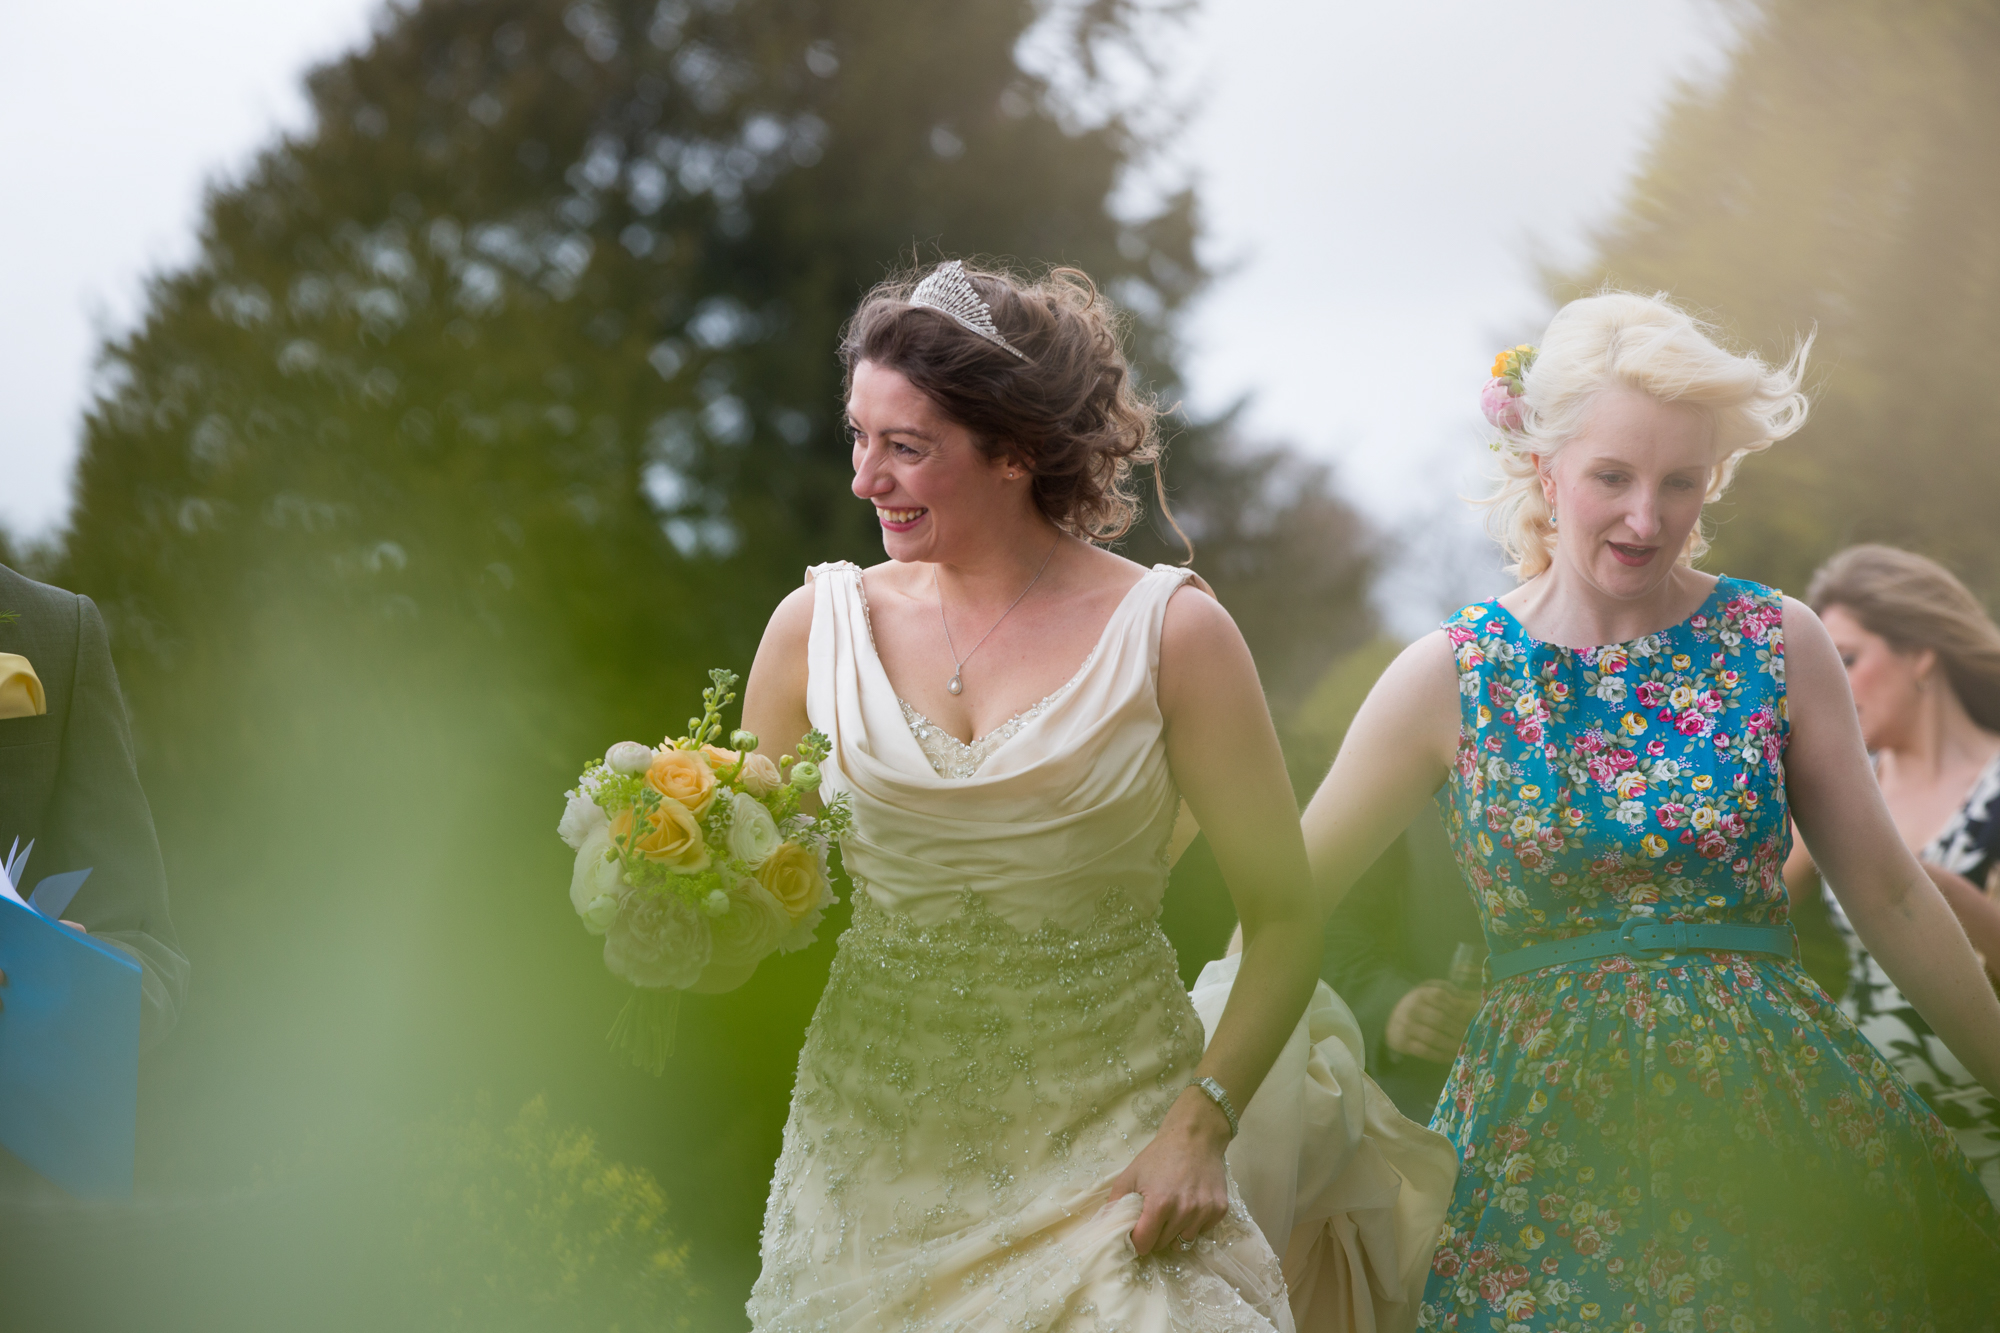 wynyard hall wedding photographer duncan mccall-1027.jpg